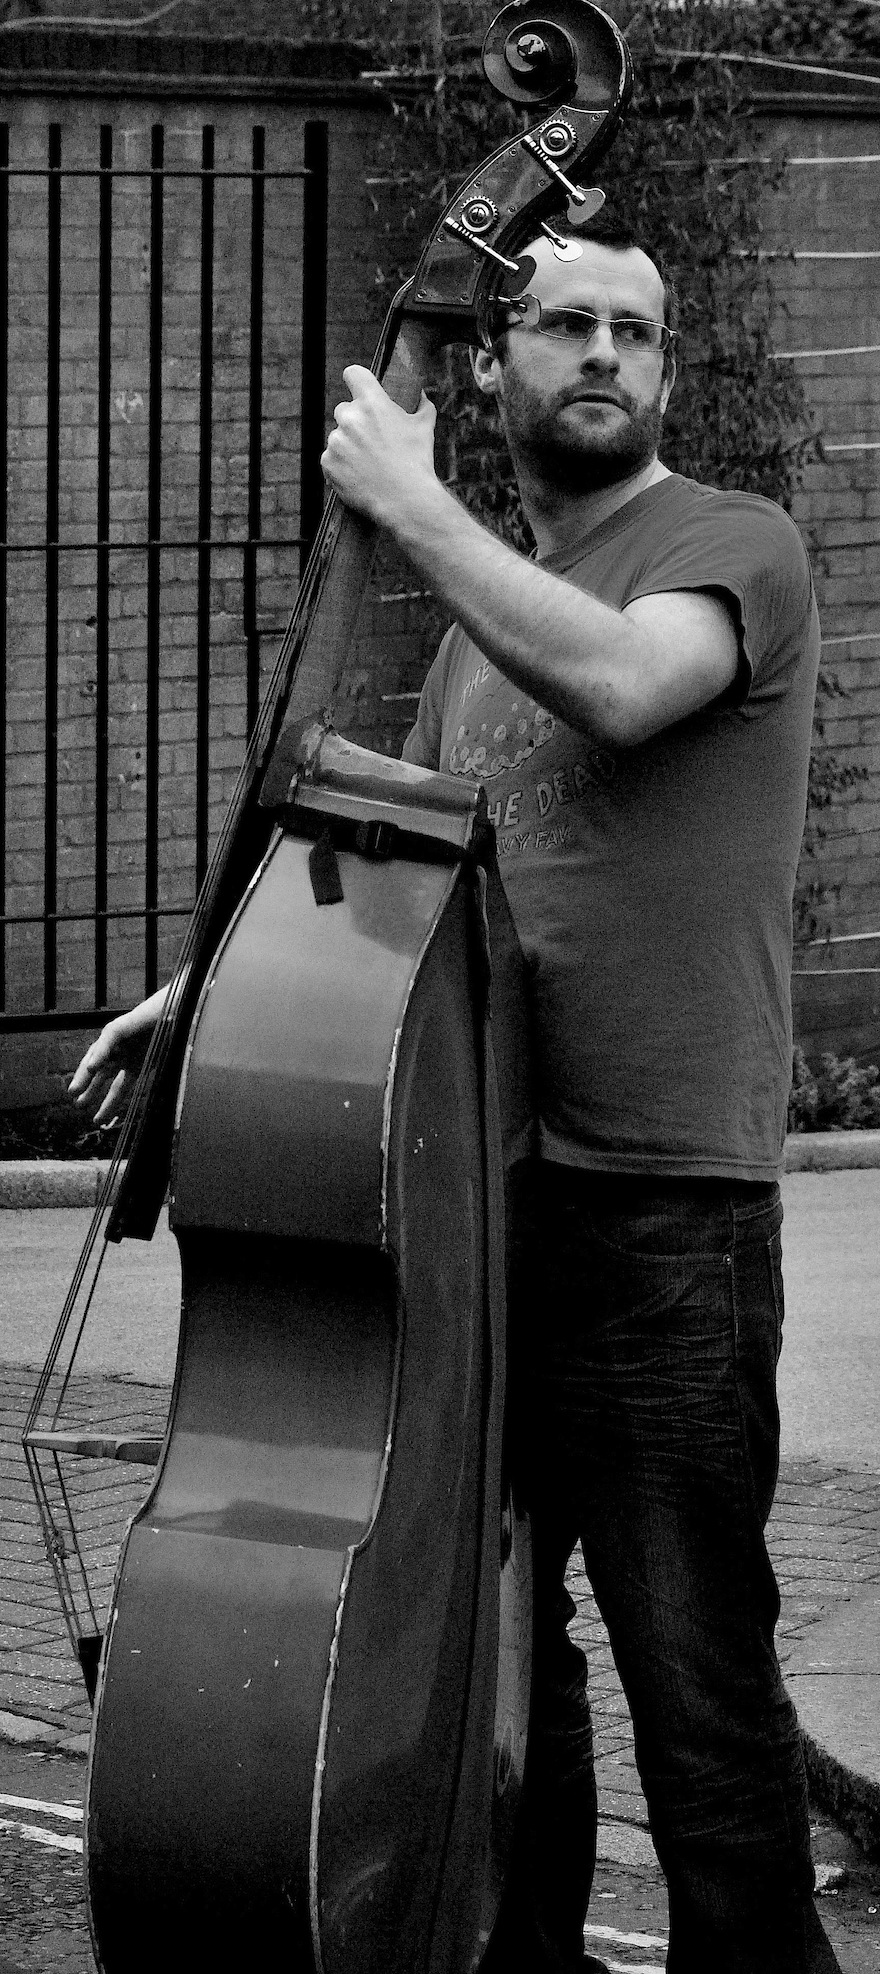 Man playing the double bass – Music